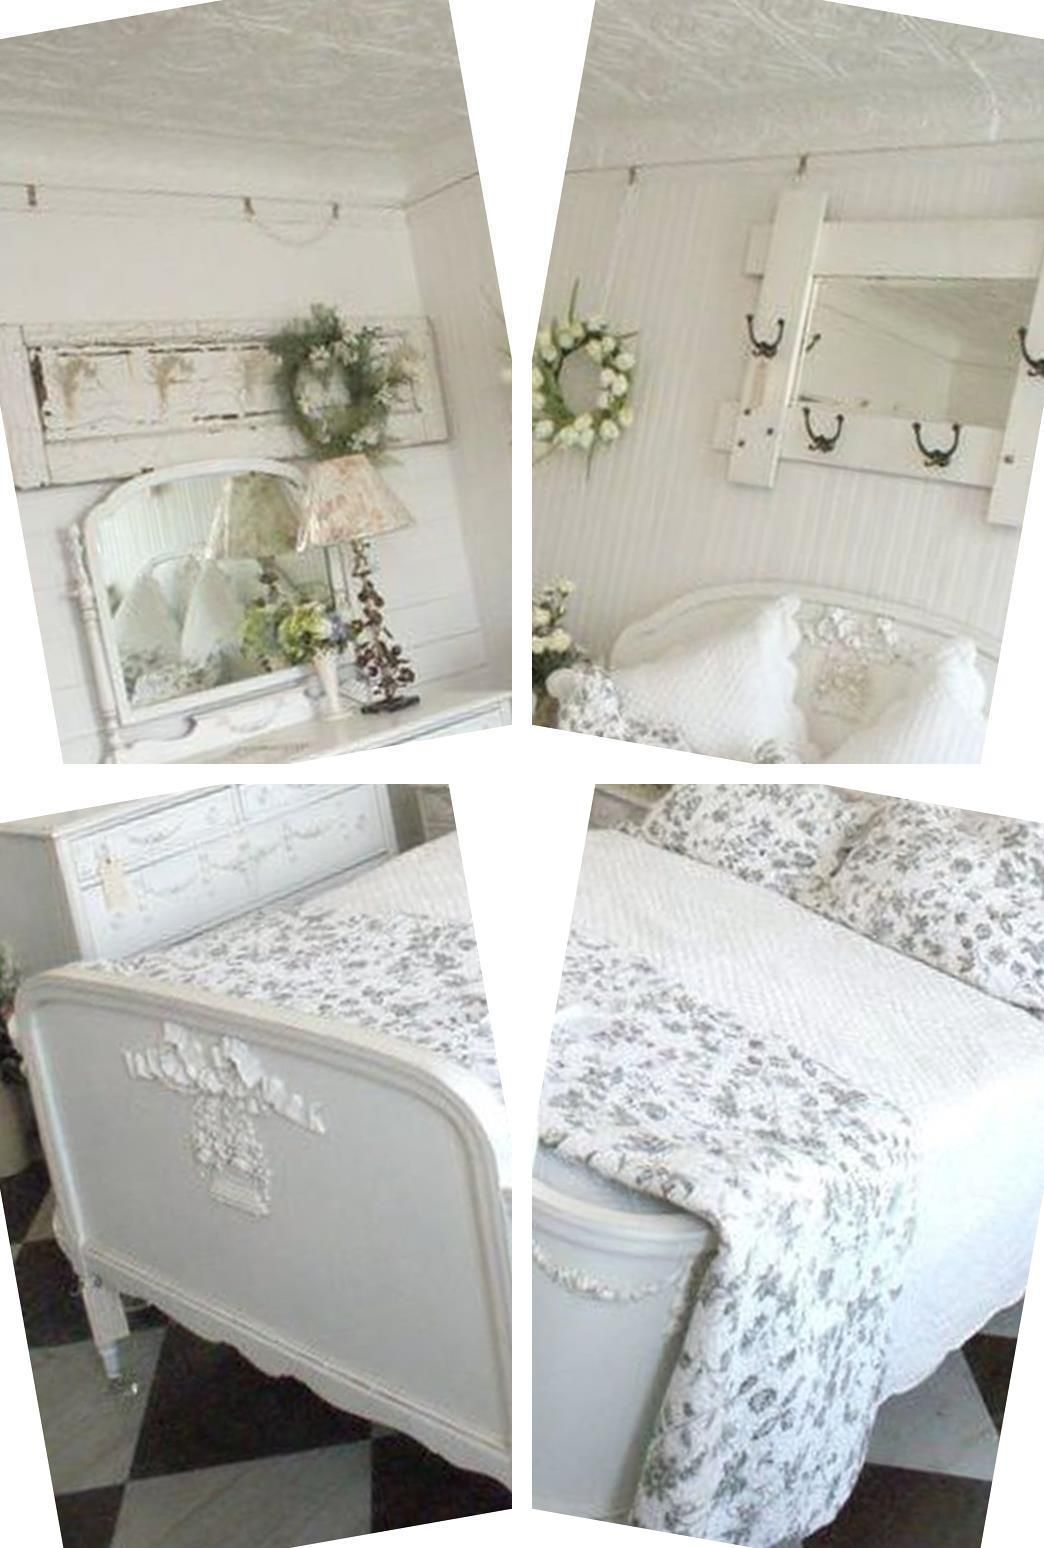 Cheap Couches Furniture Brands Shabby Chic Childrens Table And Chairs Shabby Chic Bedroom Furniture Shabby Chic Decor Bedroom Chic Bedroom Decor